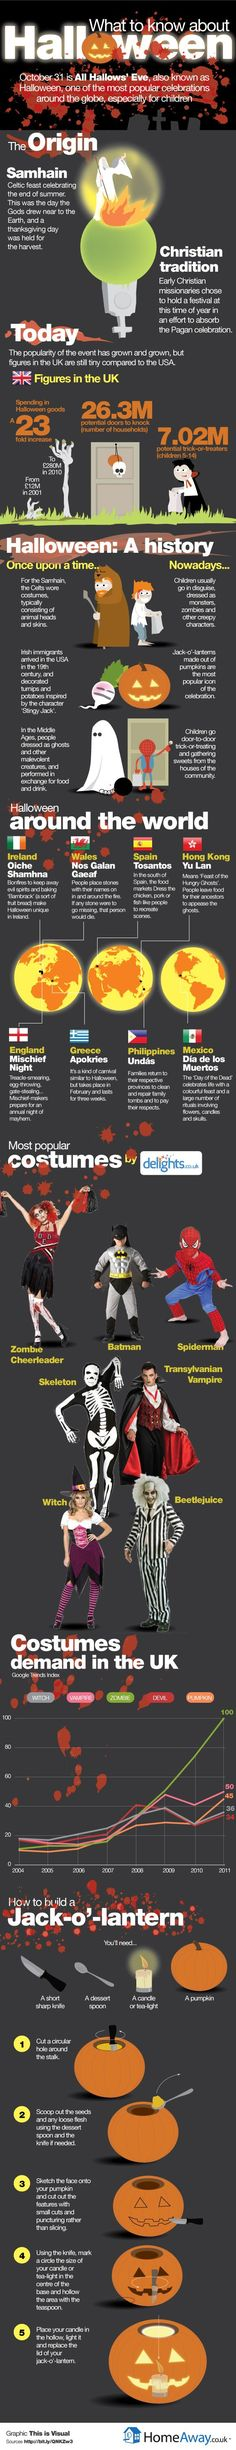 All you need to know for Halloween!